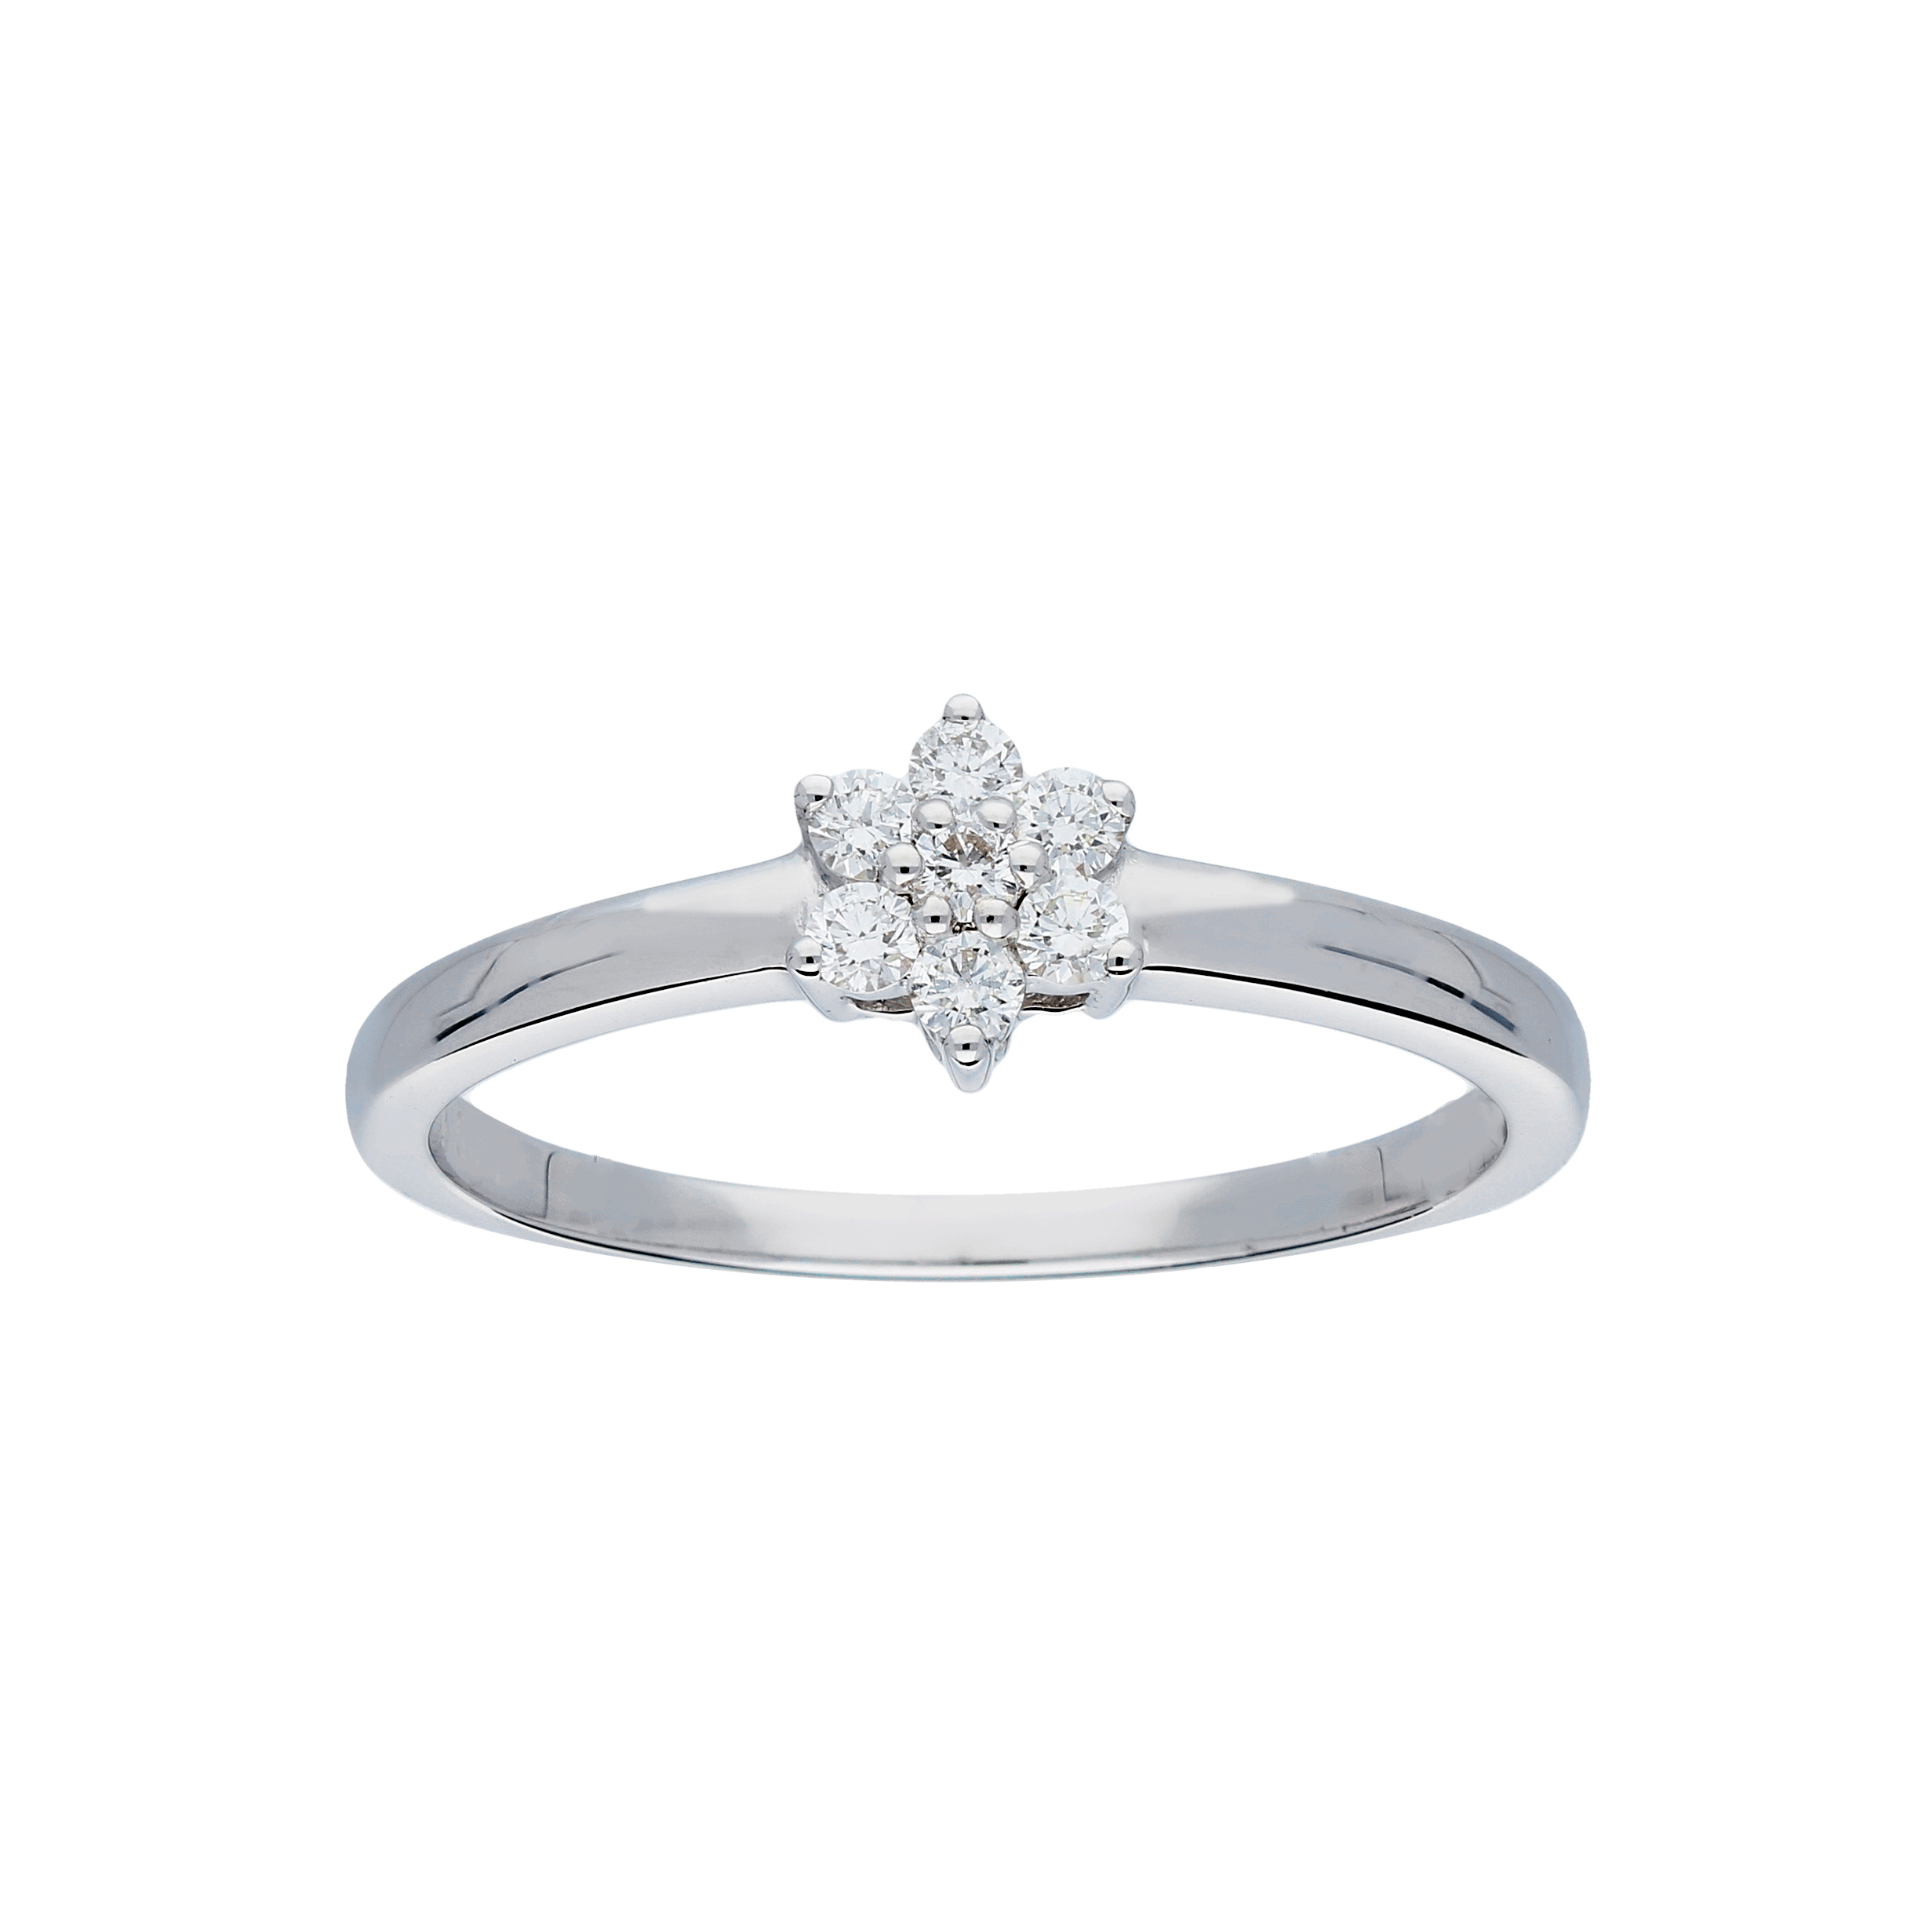 Glow Witgouden Ring Glanzend Diamant 7 0.145ct G si 214.3024.50